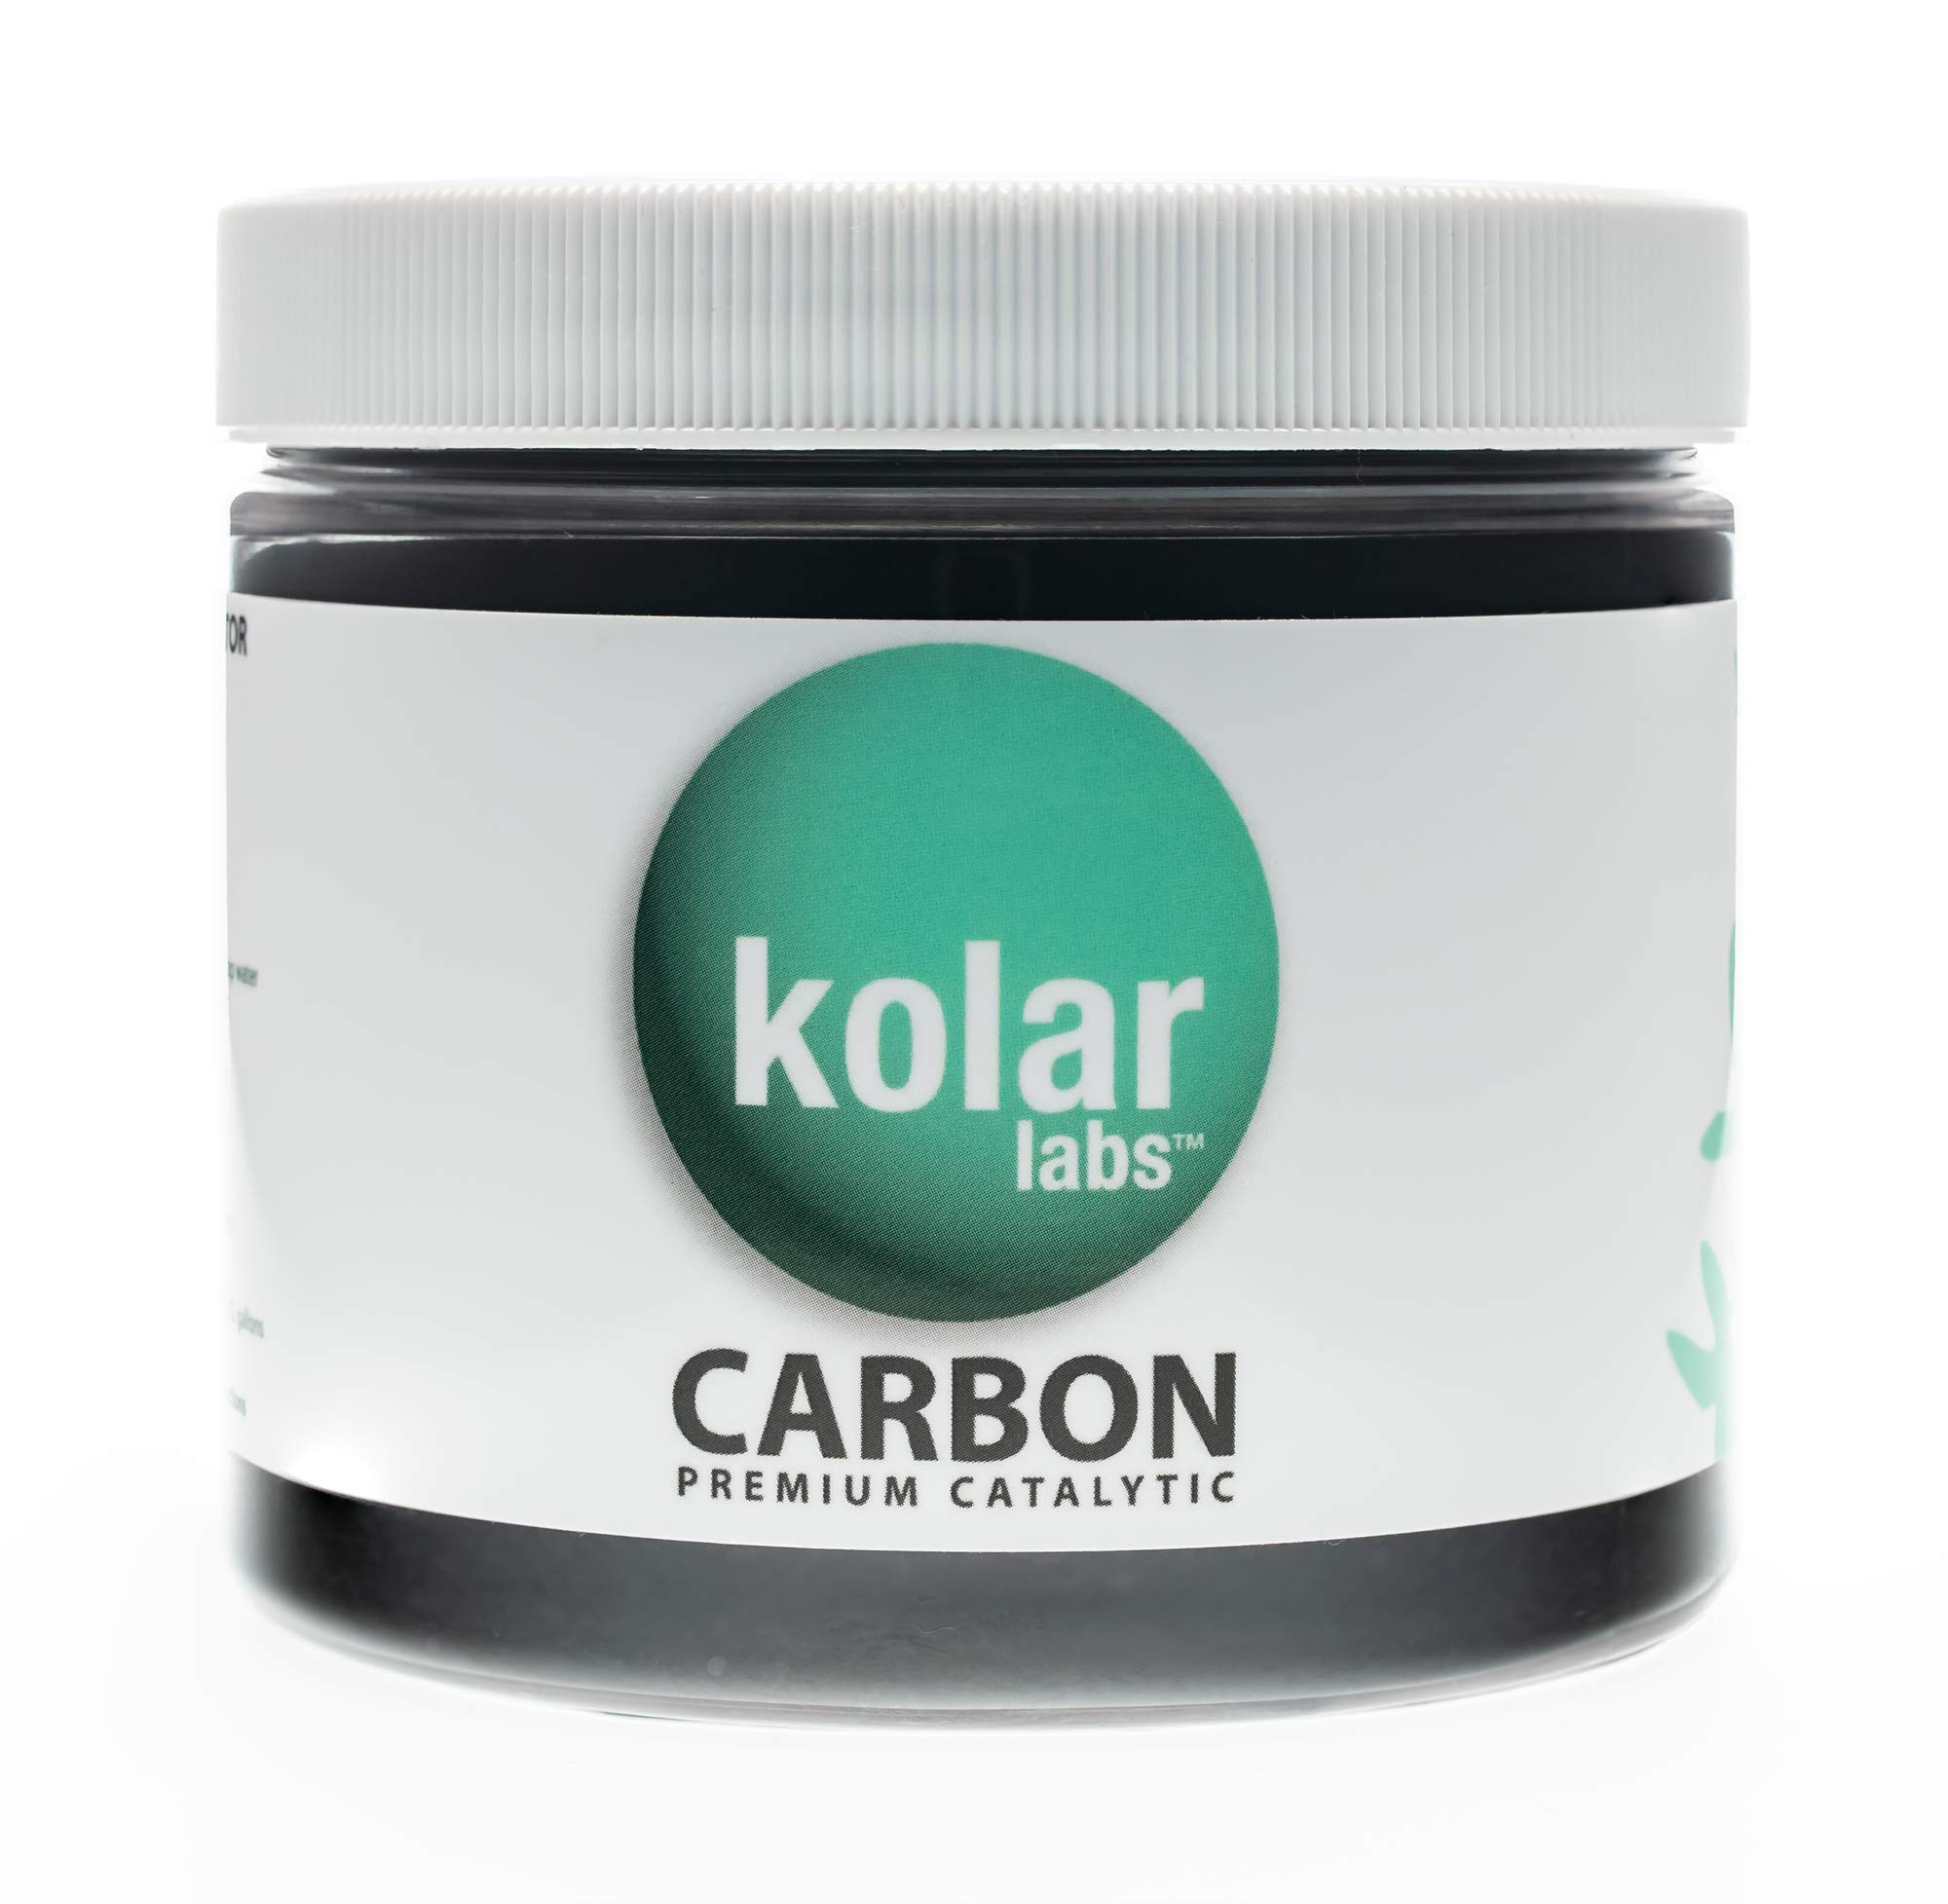 Kolar Labs – Premium Catalytic Activated Carbon – Chlorine, Chloramine and Hydrogen Sulfide Removal for Tap Water, Reverse Osmosis Filtration Systems and Aquariums